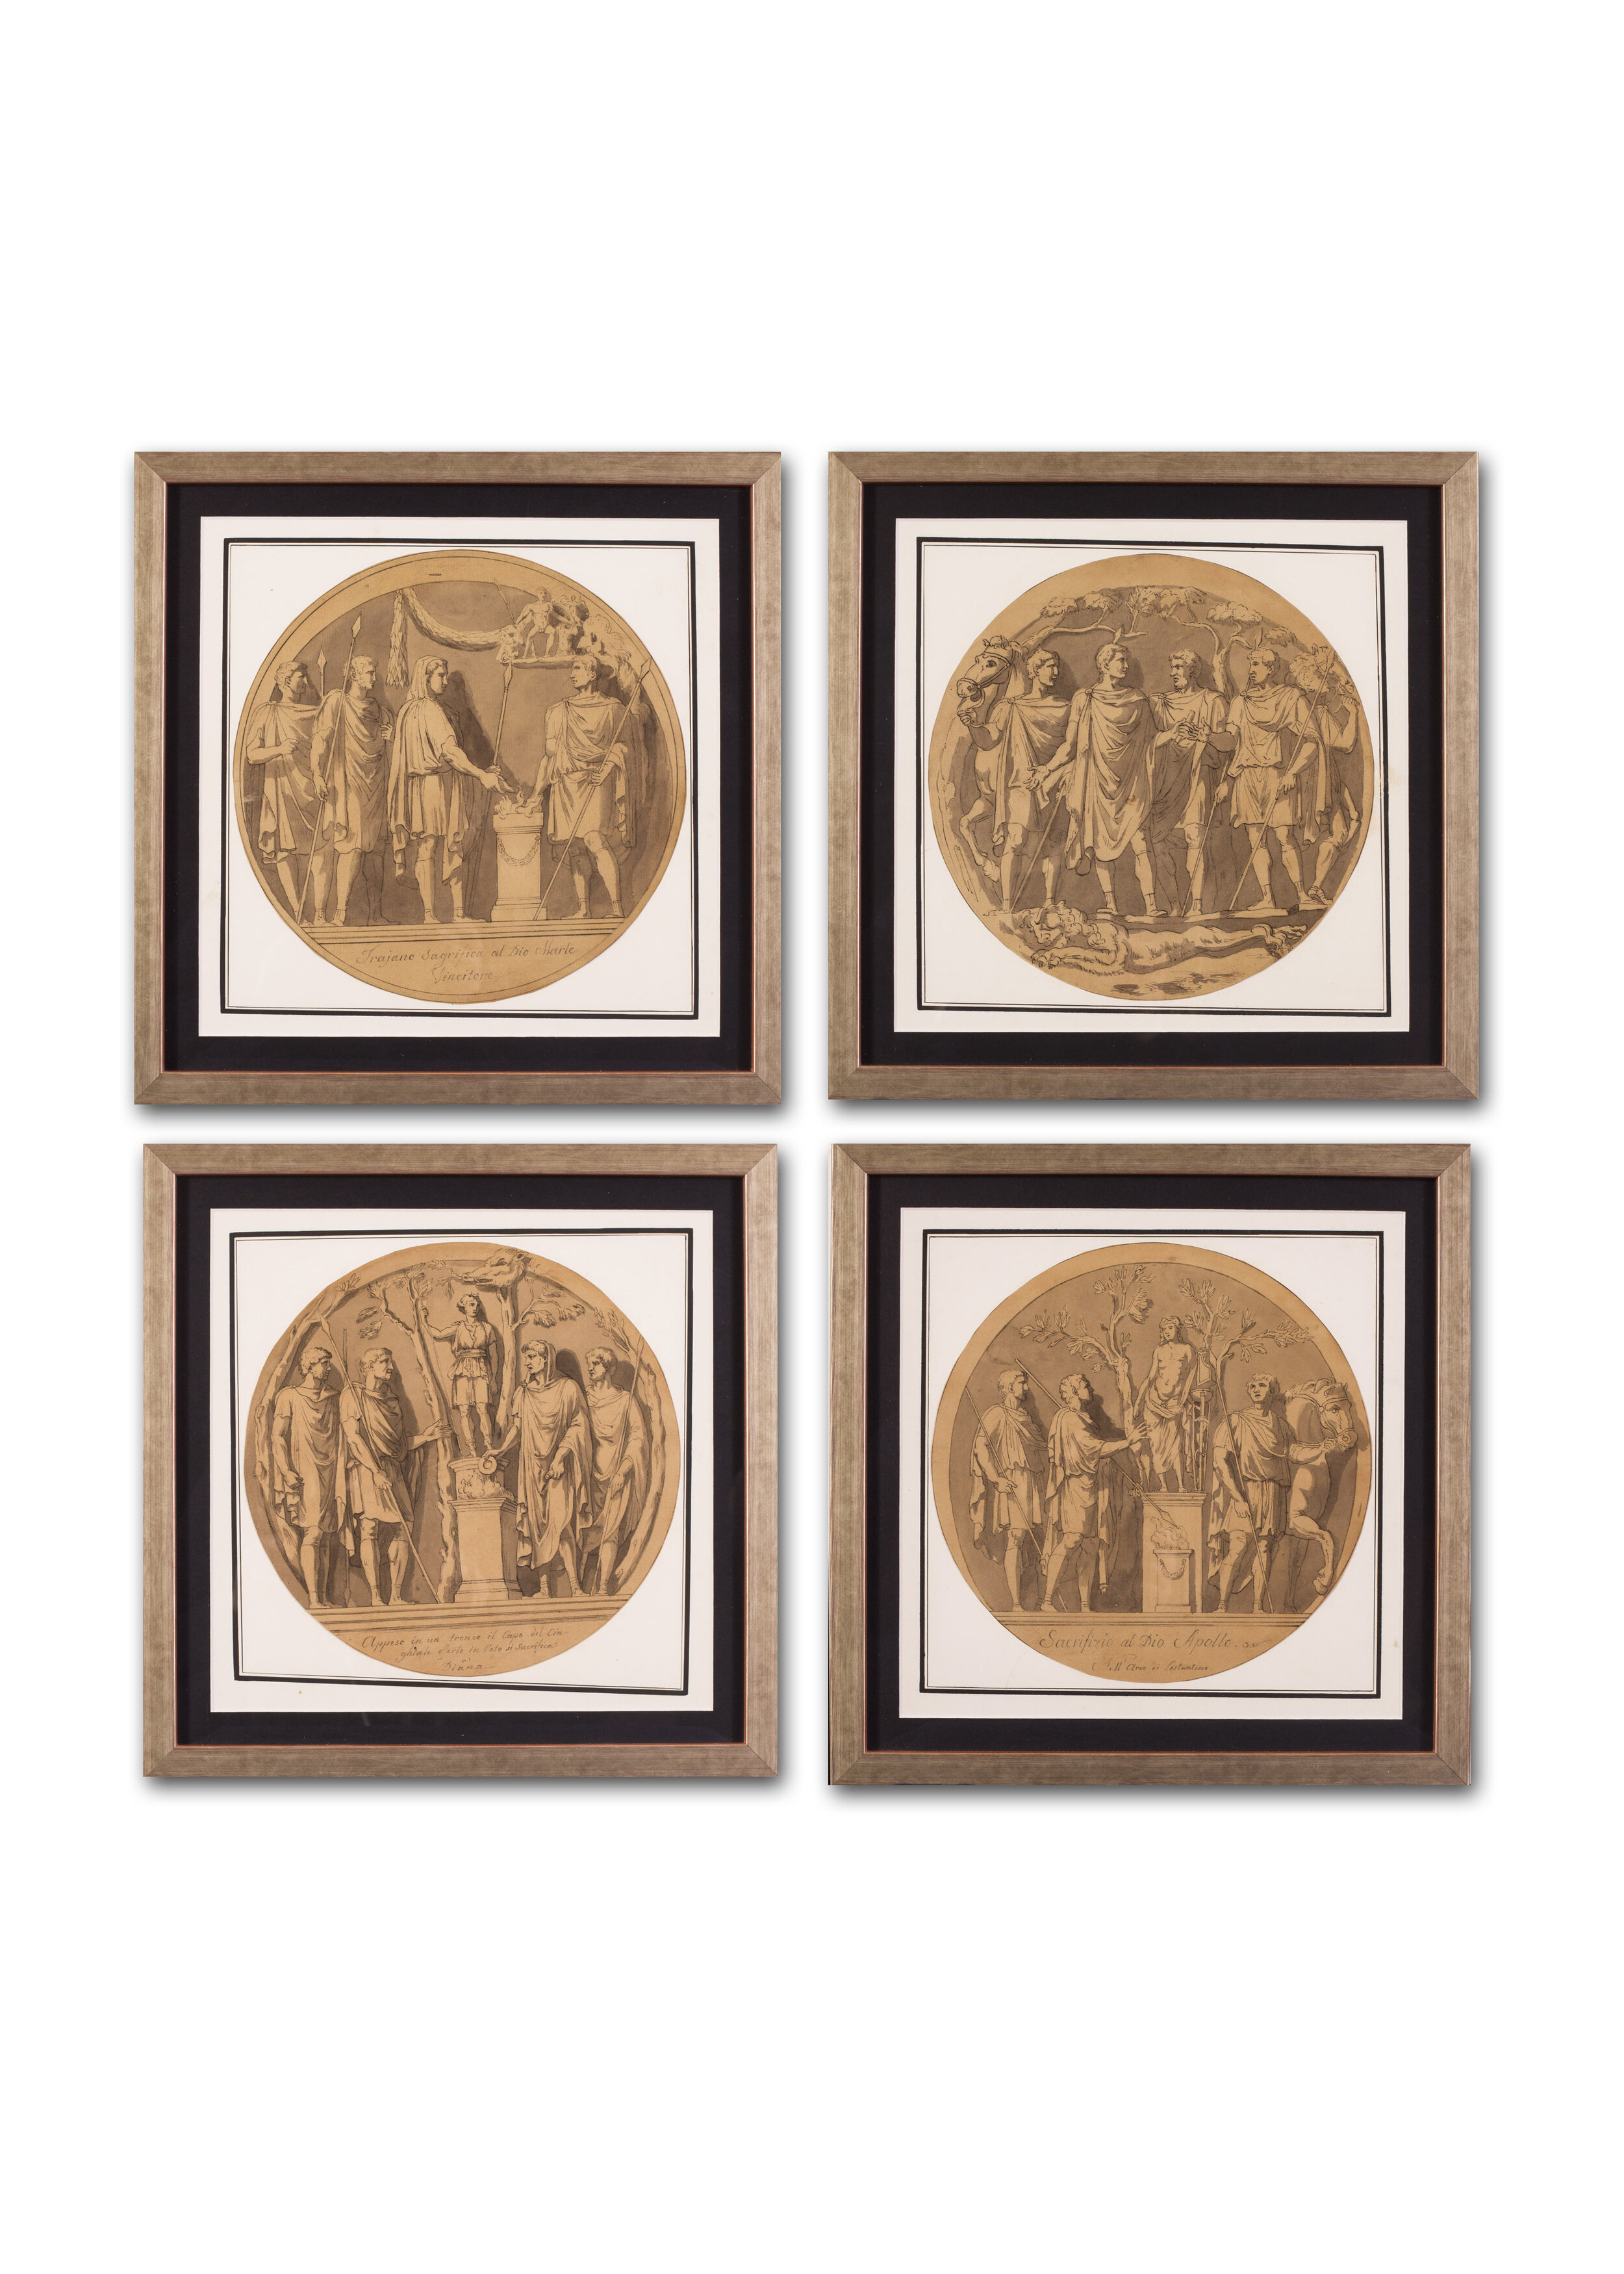 Italian School, 18th / 19th Century      A set of 8 classical studies of reliefs from the Arch of Constantine, Rome     Price: £5,200